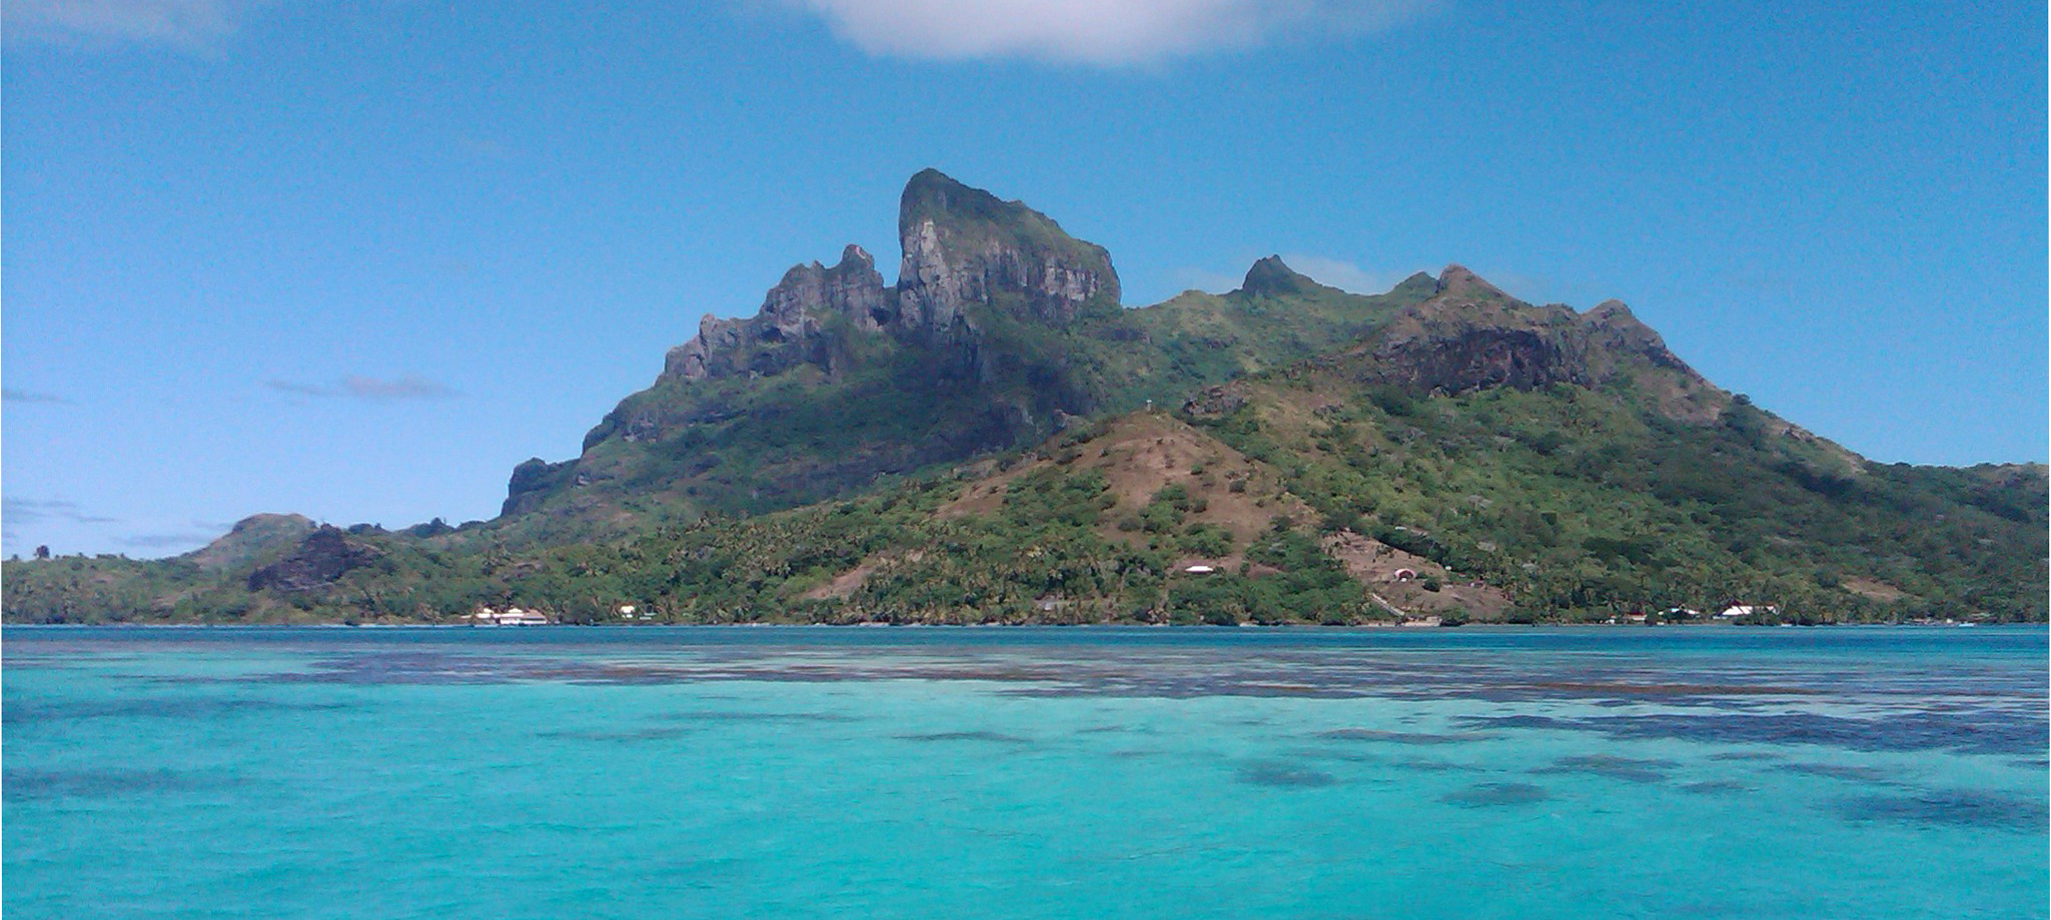 Bora Bora from the water